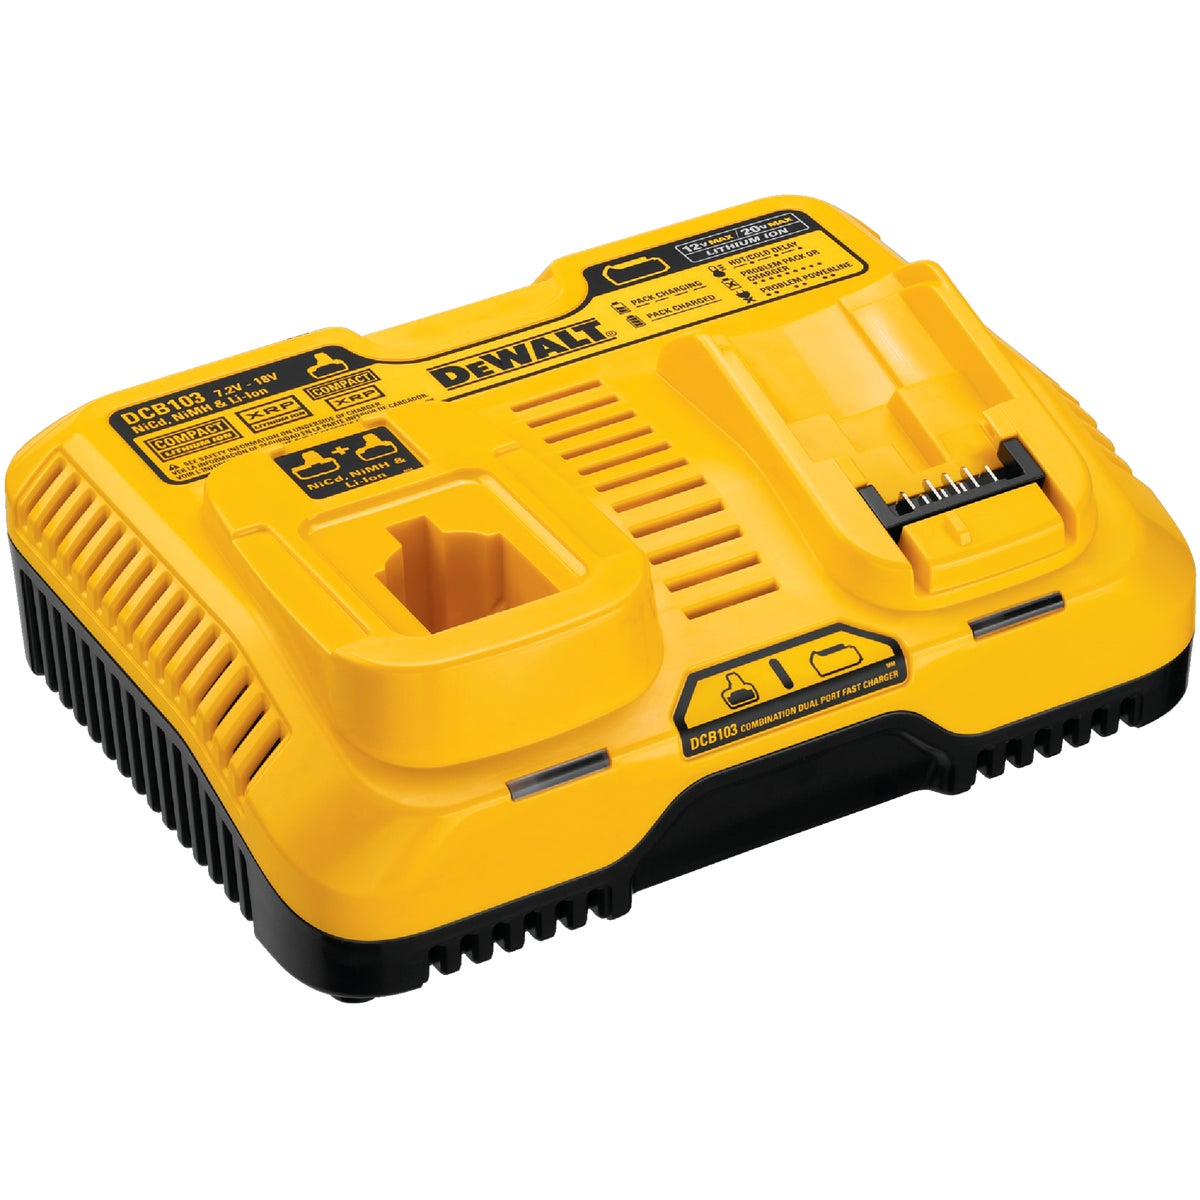 12V 18V 20V CHARGER - DCB103 by DeWalt